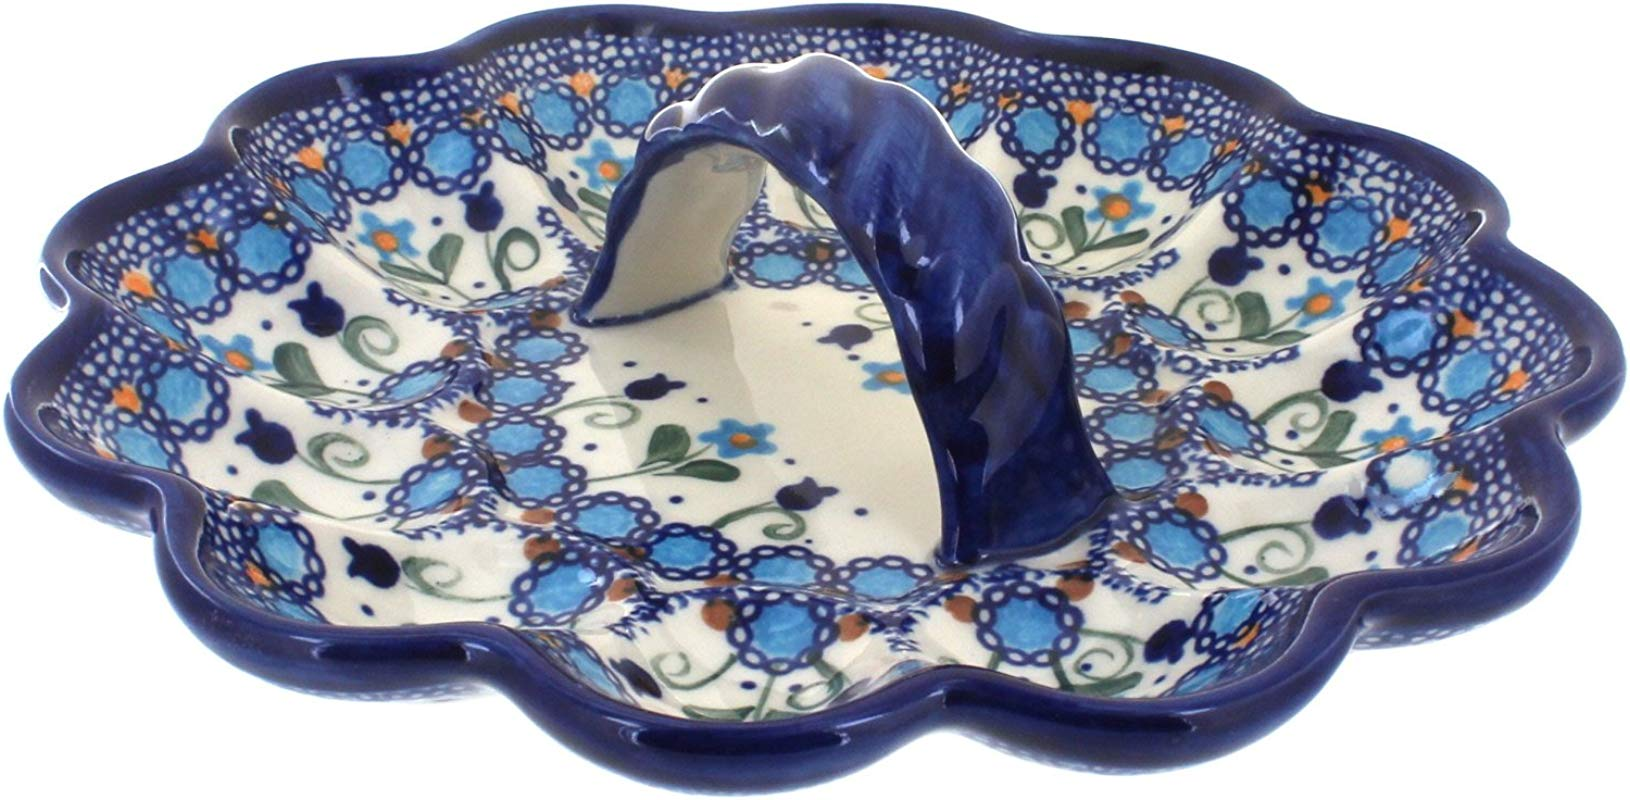 Polish Pottery Savannah Egg Plate